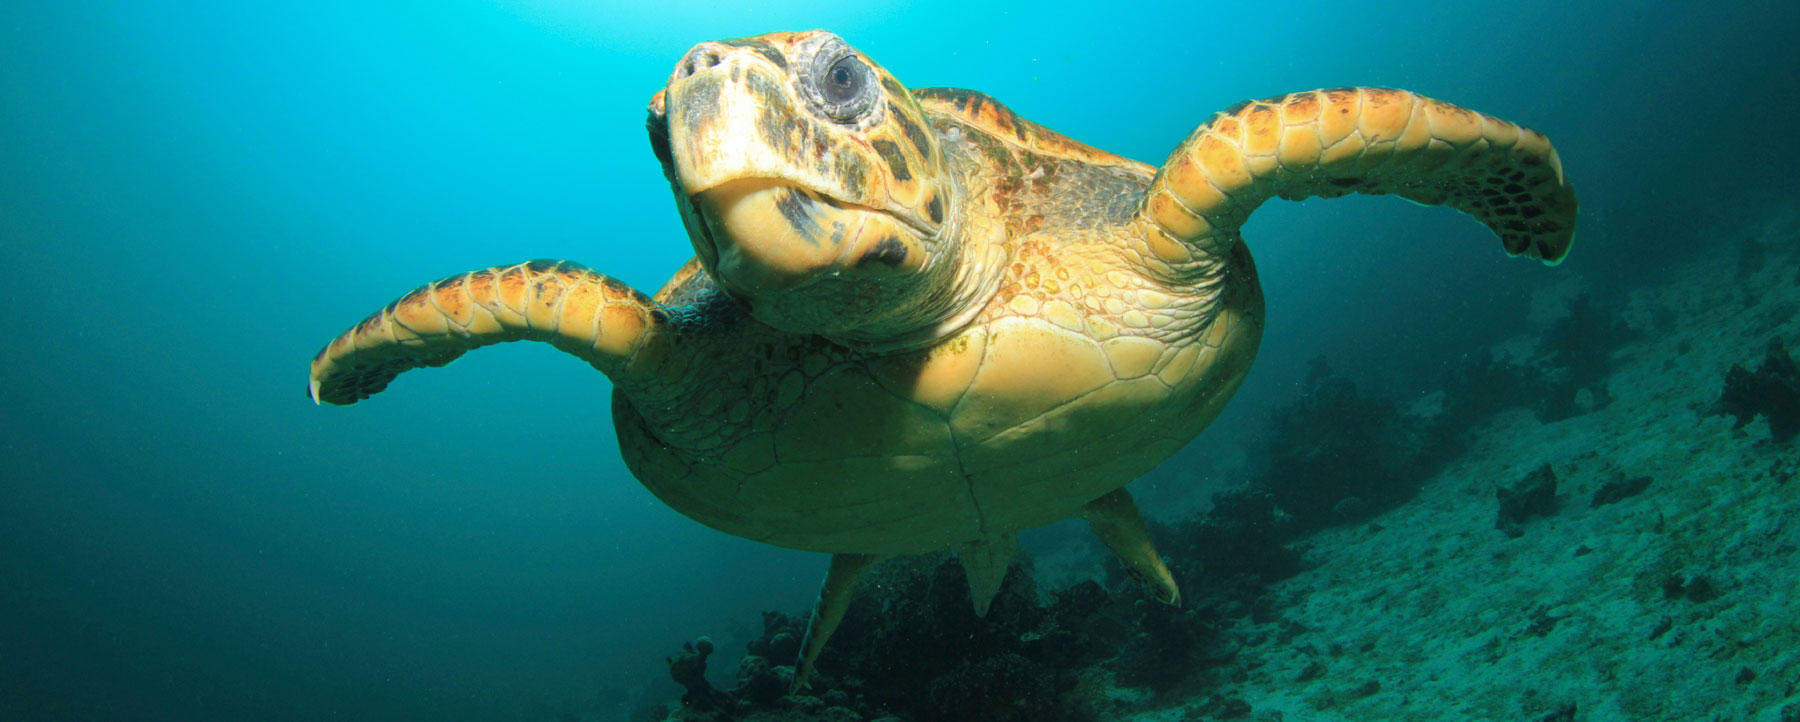 Sea turtle swimming stock photo